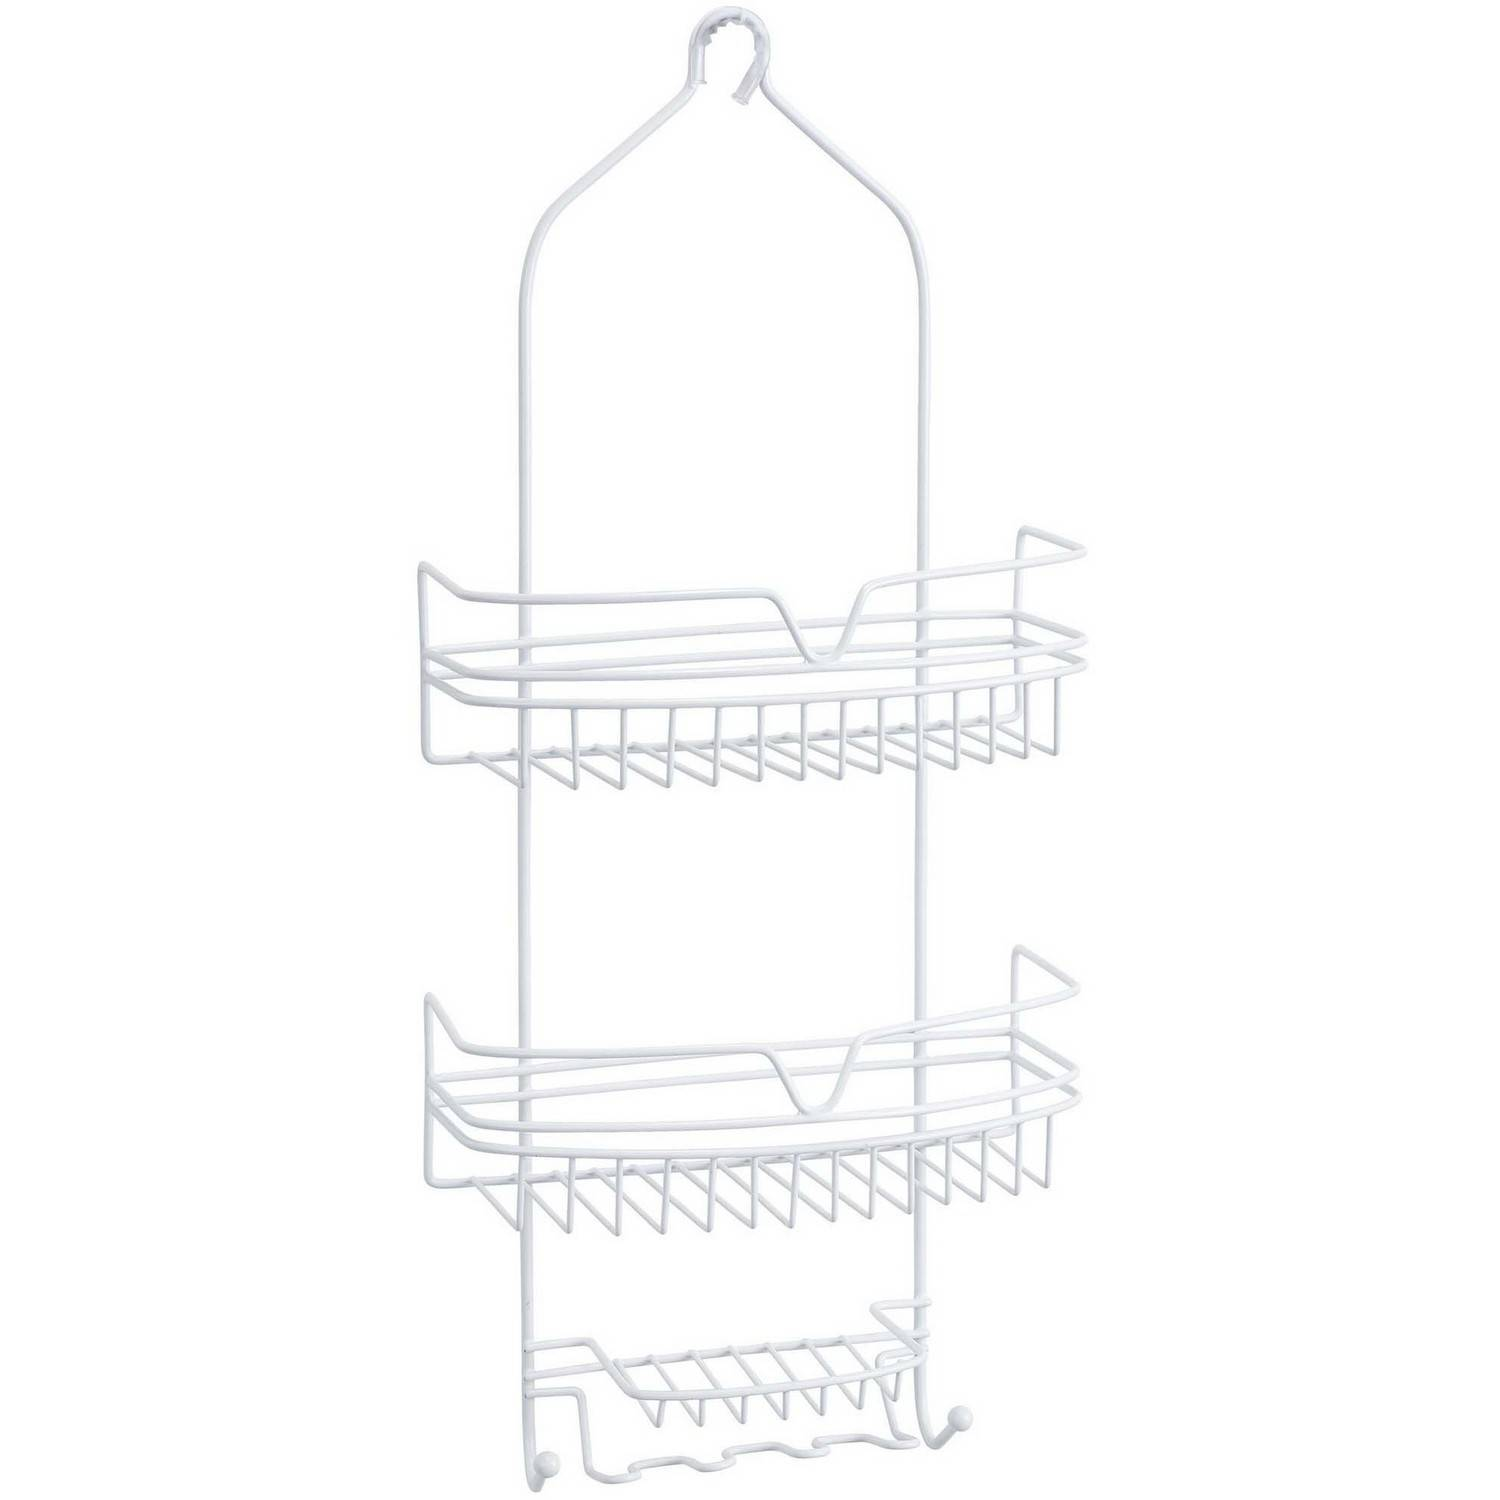 Bath Bliss Shower Organizer Caddy by Kennedy International, INC.